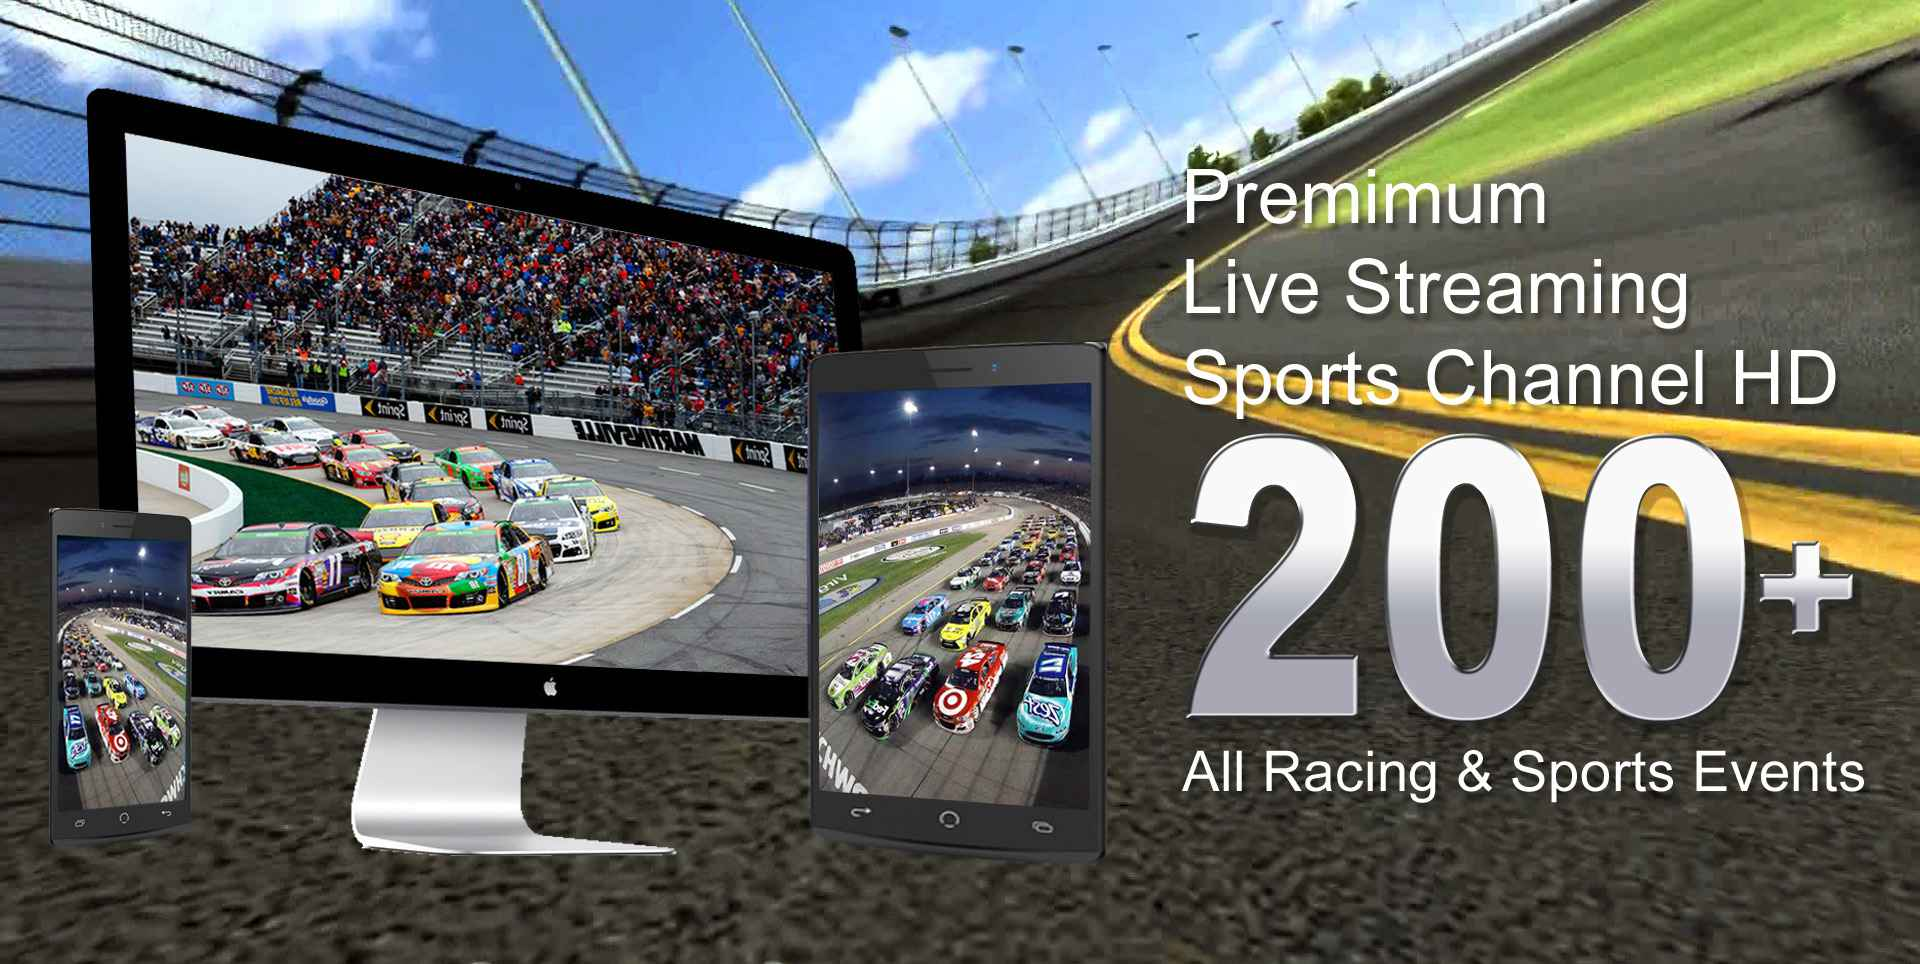 Sprint Cup series New Hampshire 301 streaming